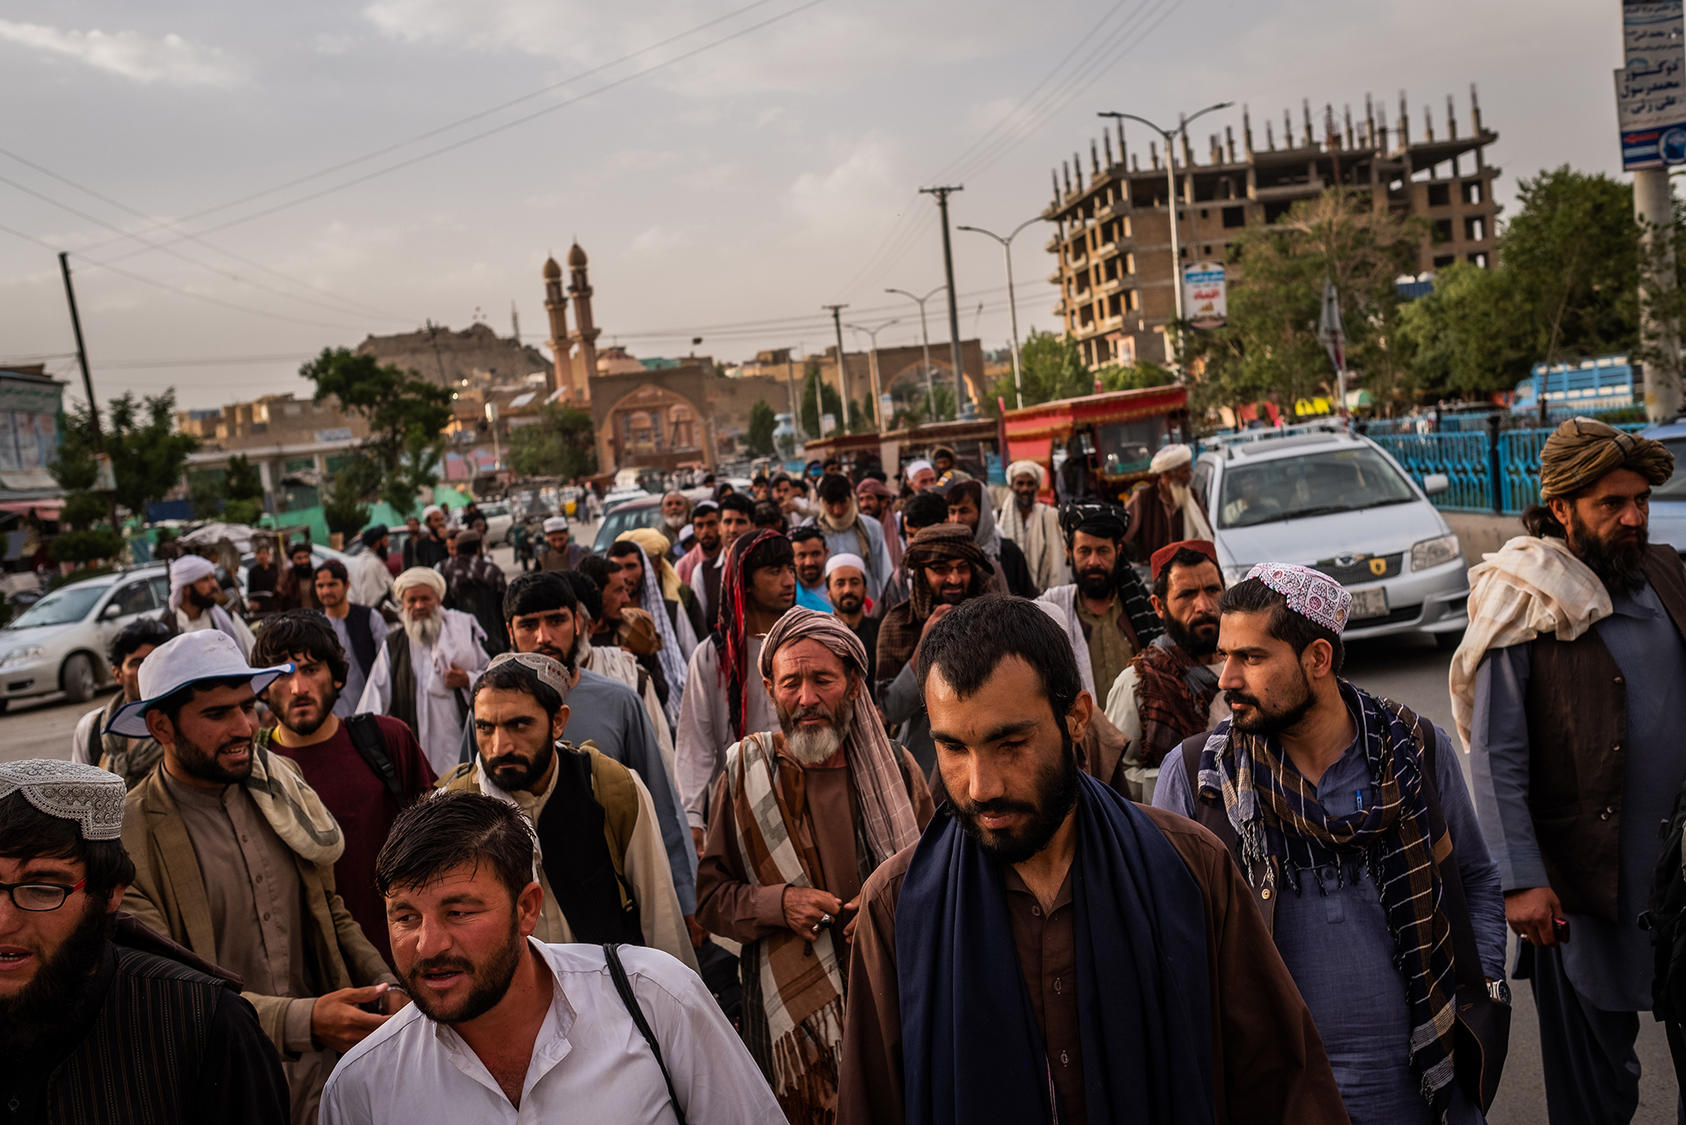 A peace march in Ghazni, June 10, 2018. (Jim Huylebroek/The New York Times)